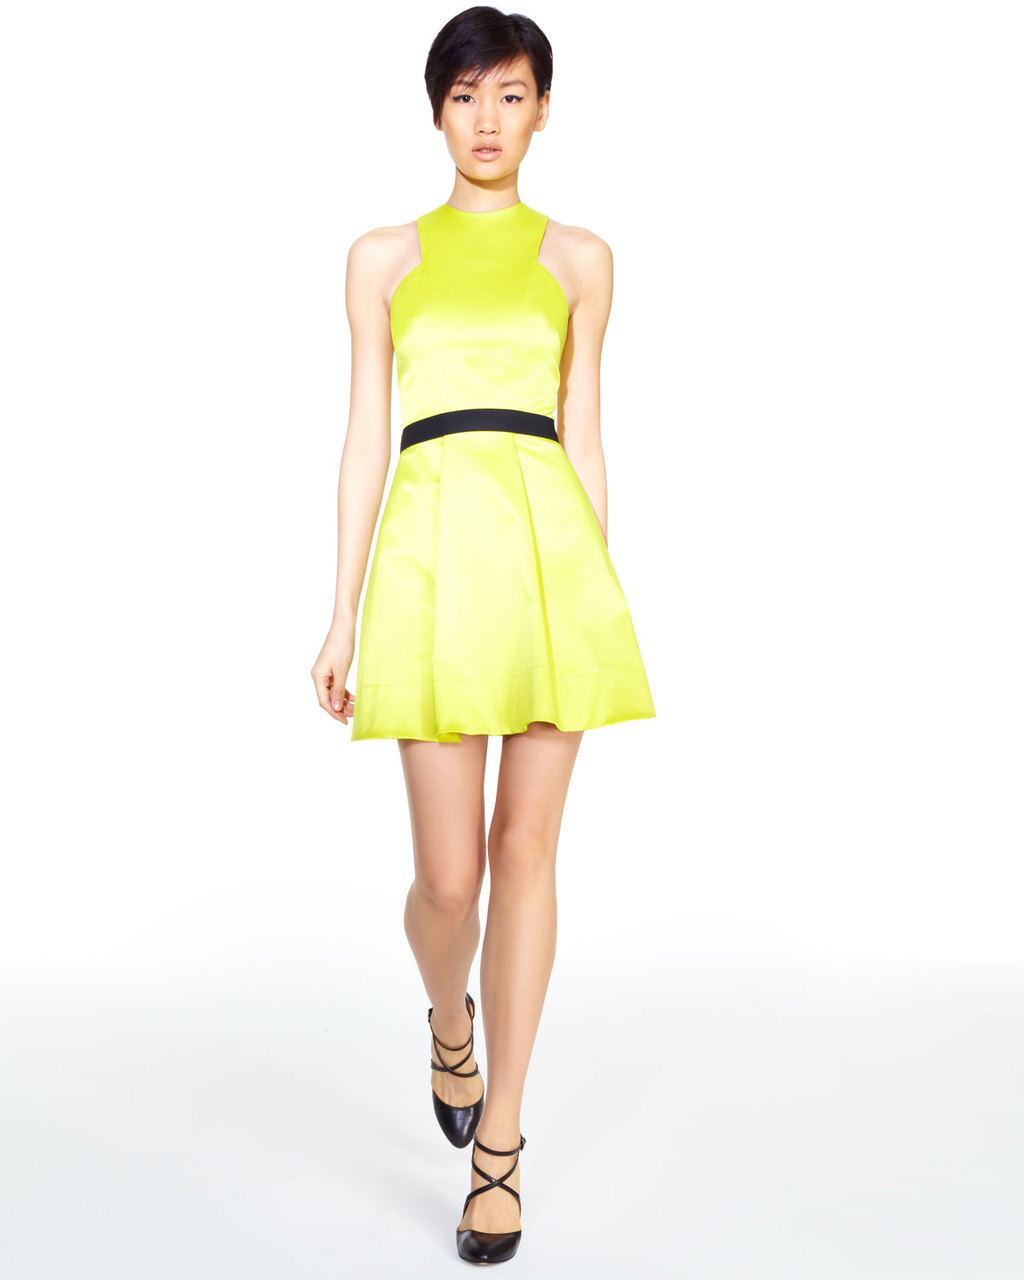 Electric-yellow-bridesmaid-dress-with-black-sash.full